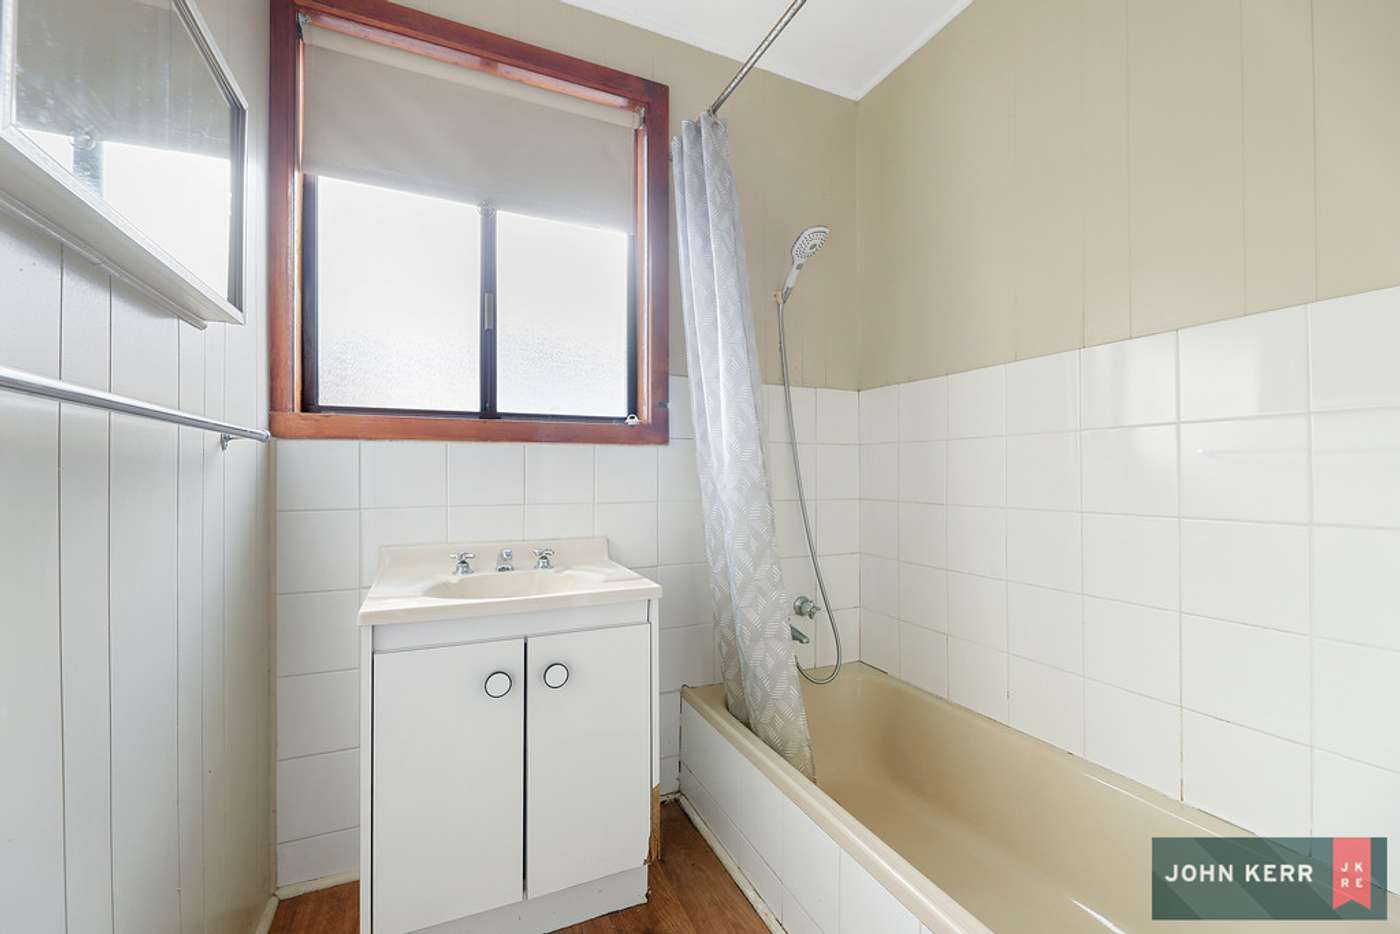 Sixth view of Homely house listing, 14 Newstead Street, Newborough VIC 3825